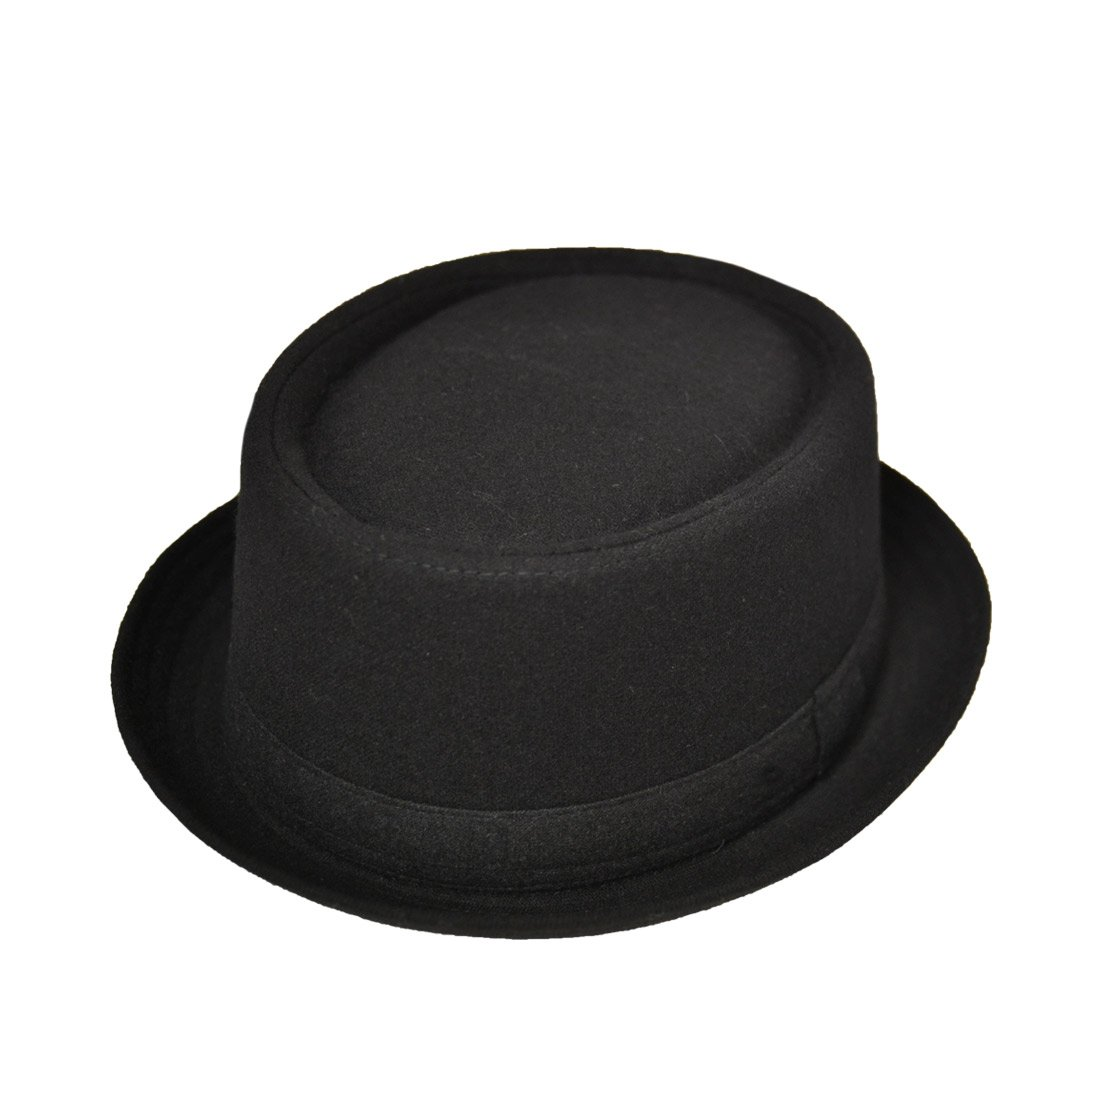 Earland Brothers Unisex Black Pork Pie Hat Wool Mix Soul Ska Breaking Bad Hat